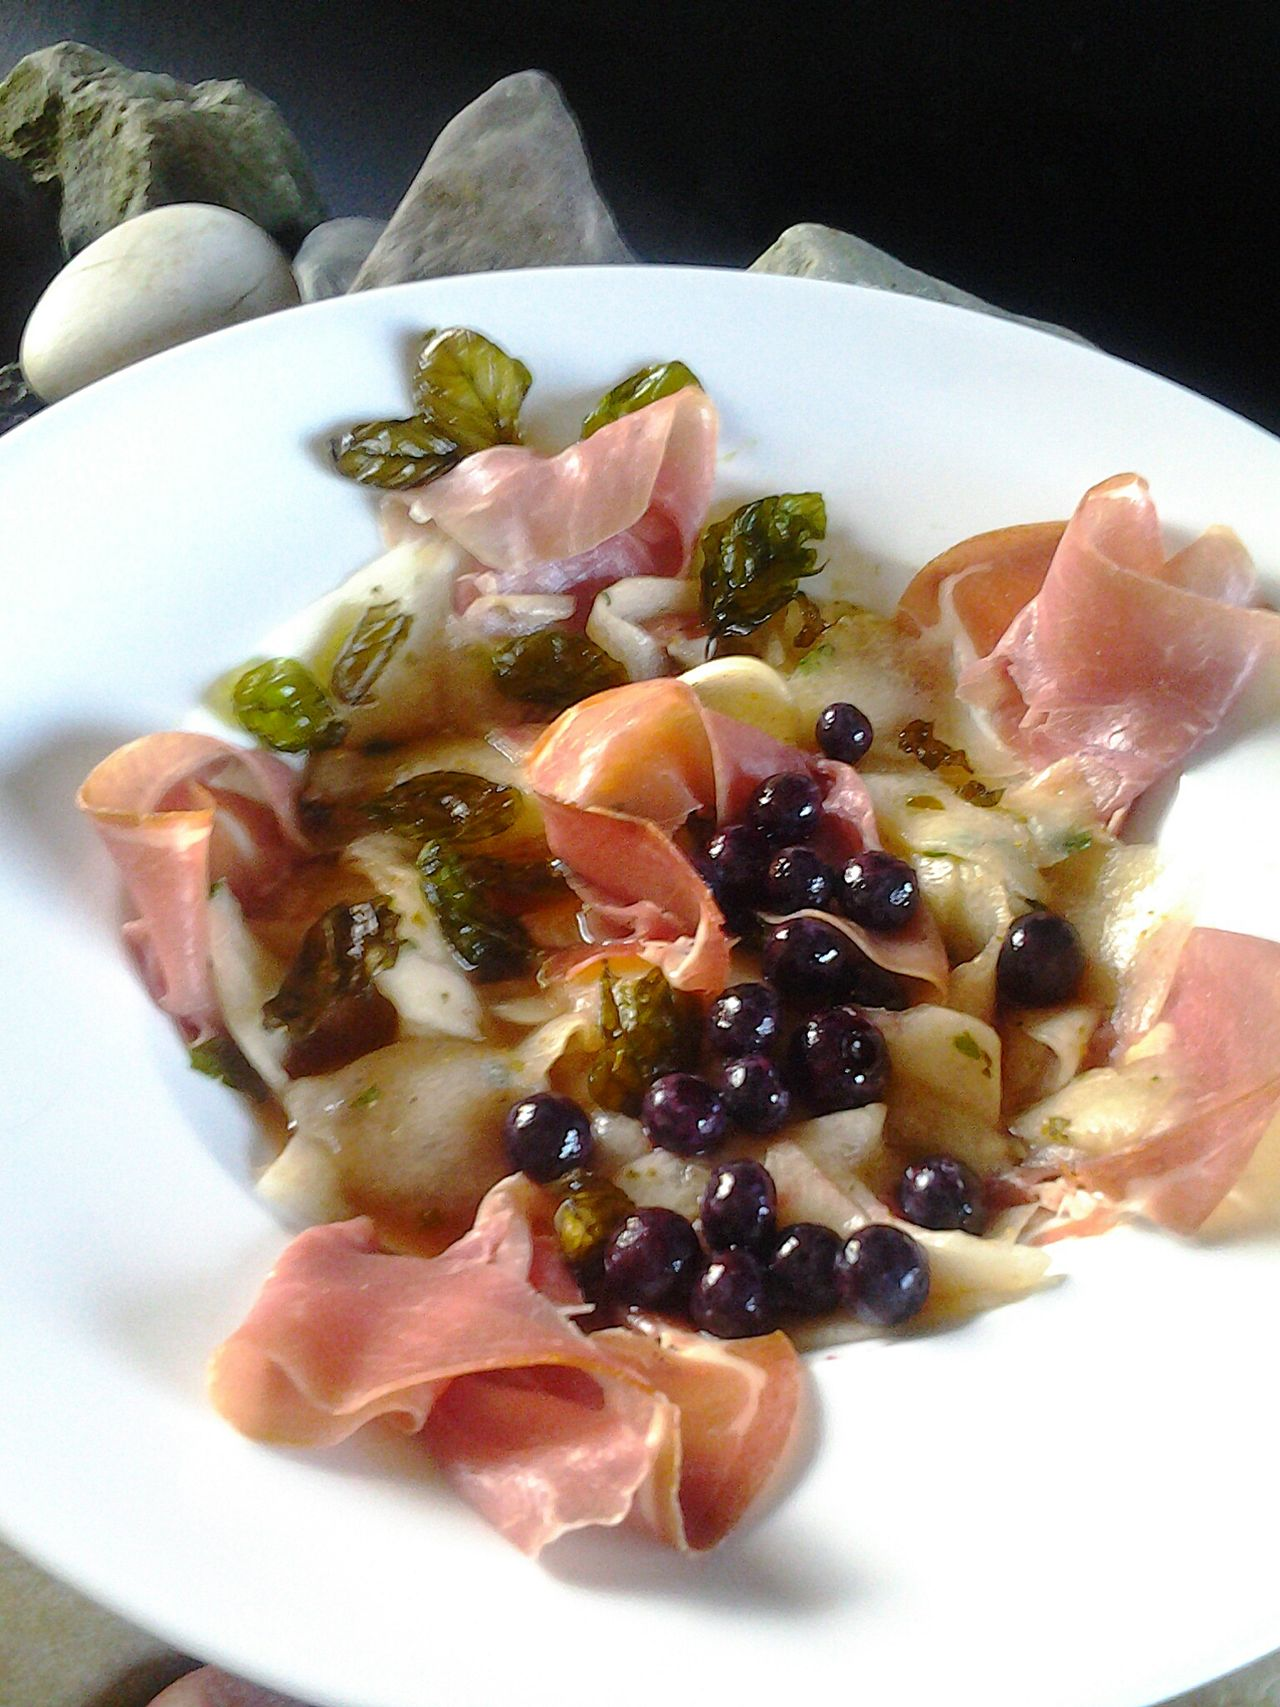 My Home Cooking Crudo Italiano Prosciutto Crudo Melon Fried Basilicum Leaves Black Berries Showcase: February